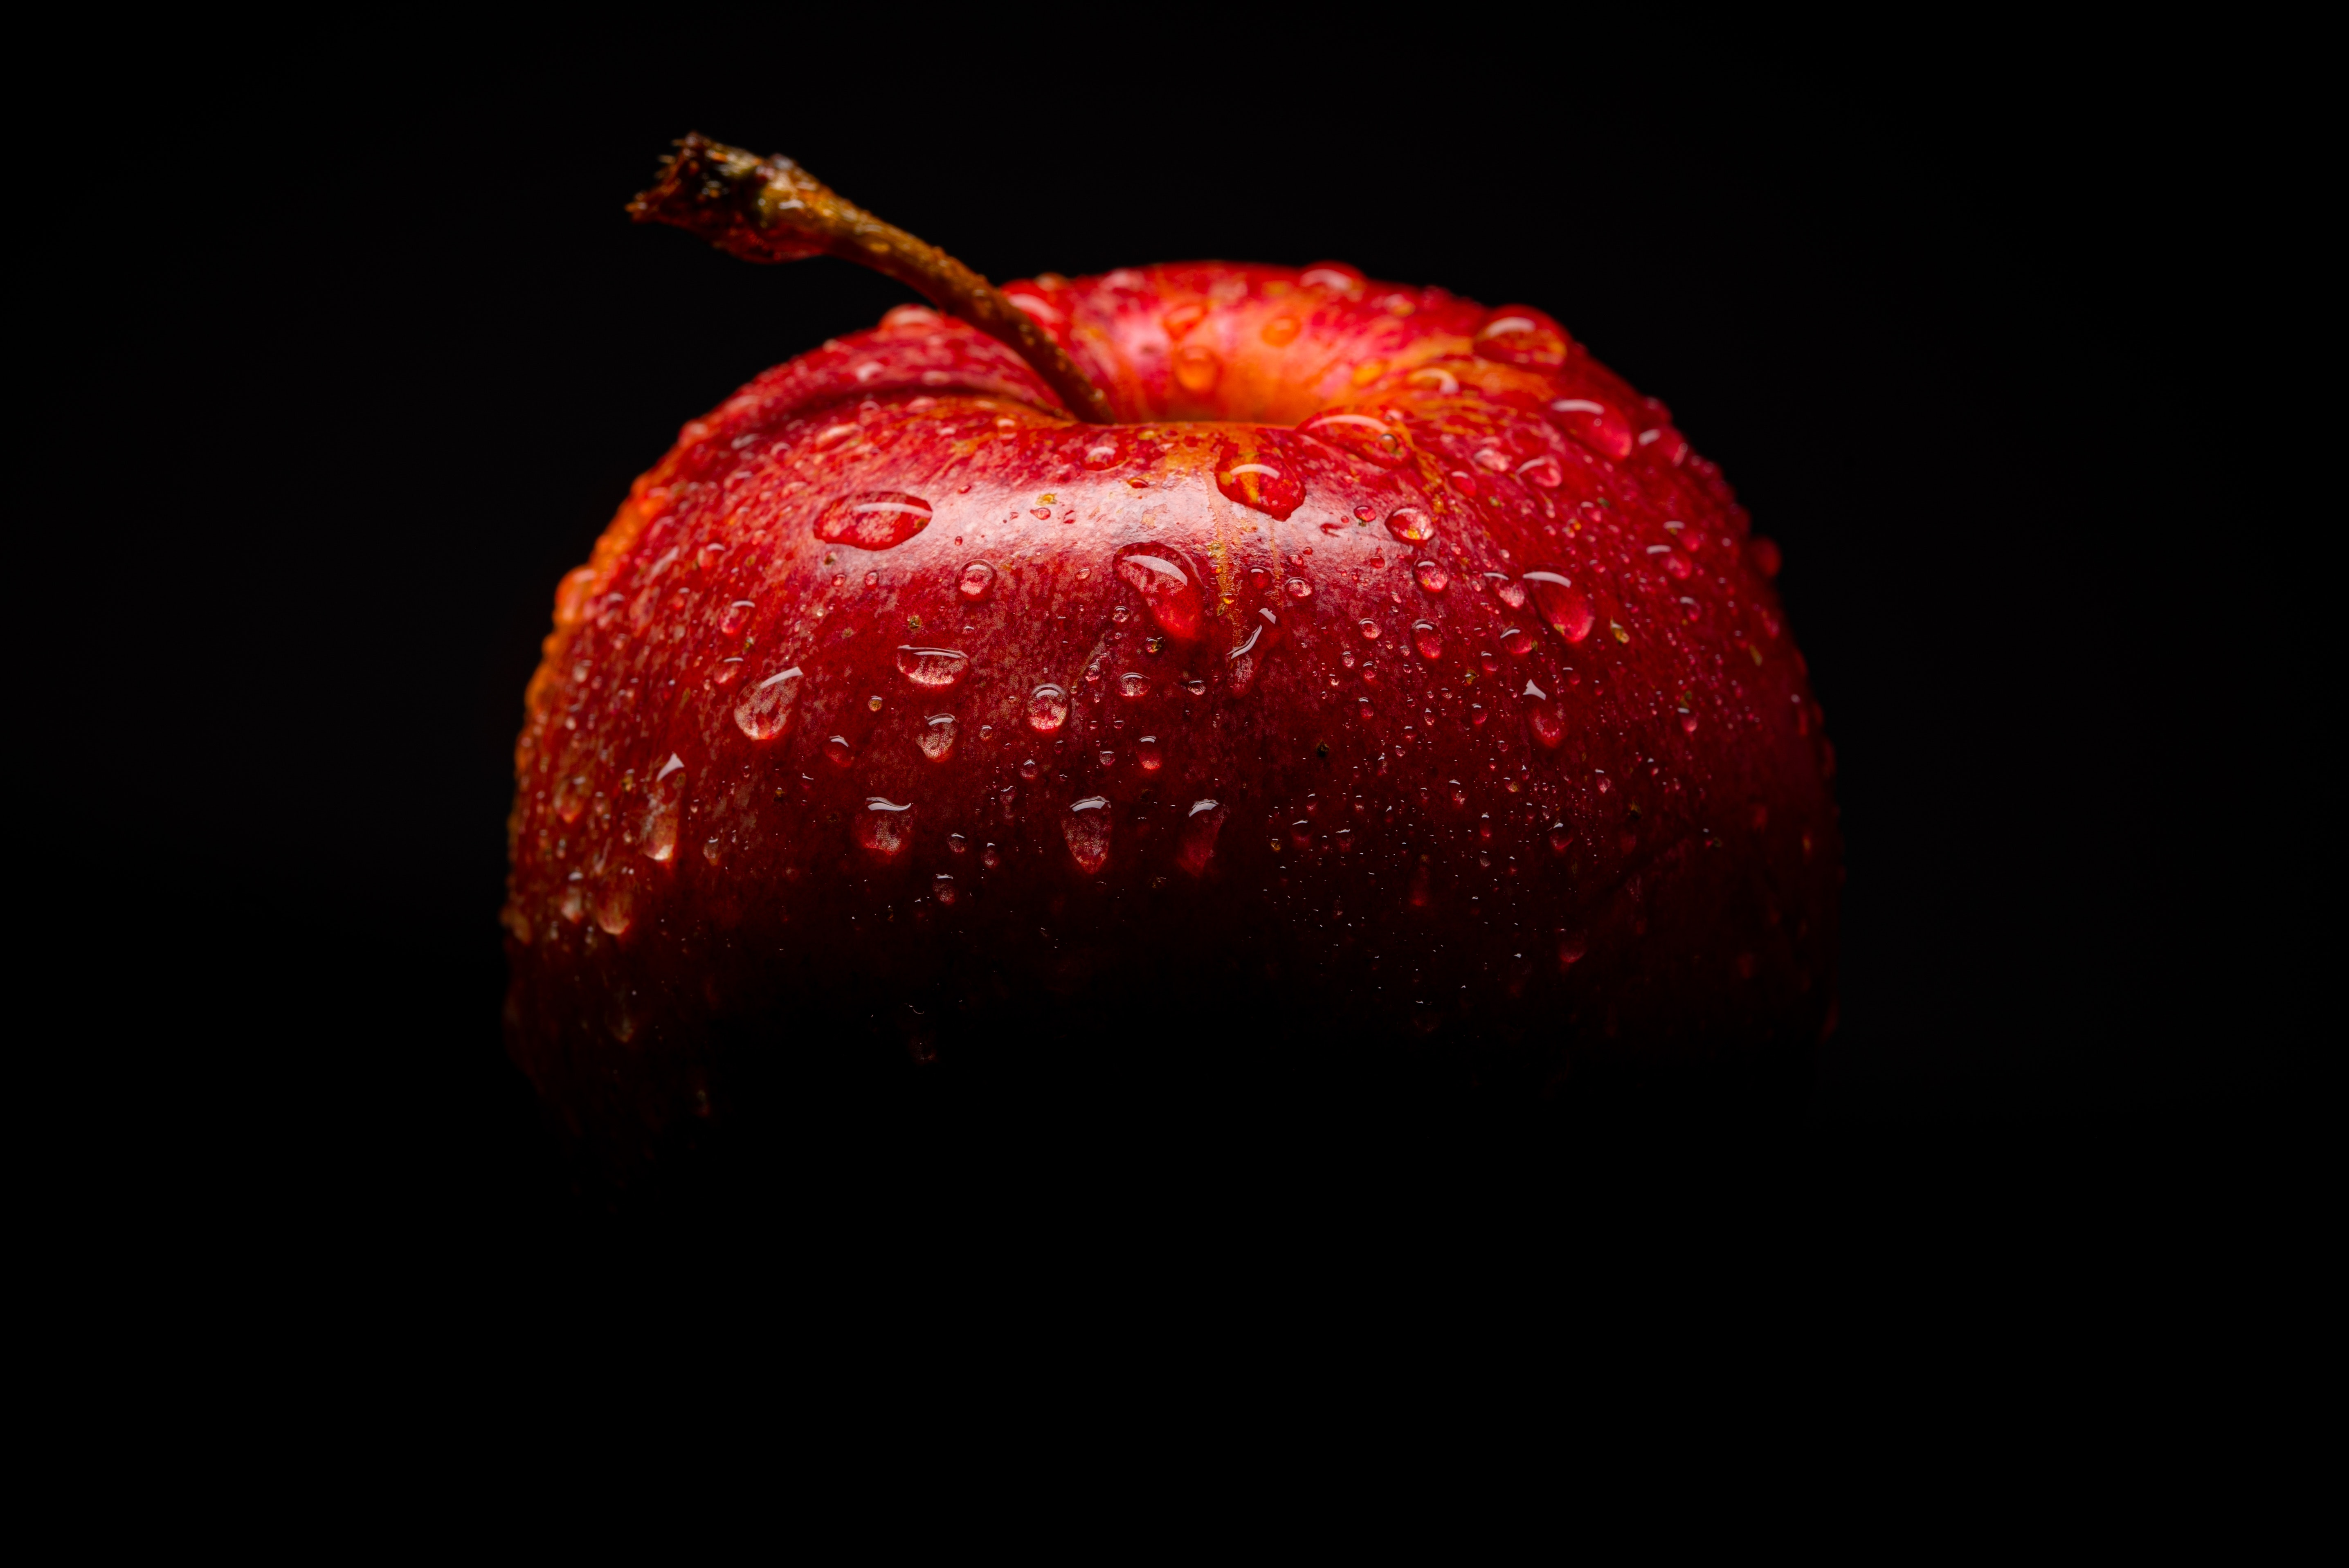 Red Apple Fruit With Black Background Free Stock Photo